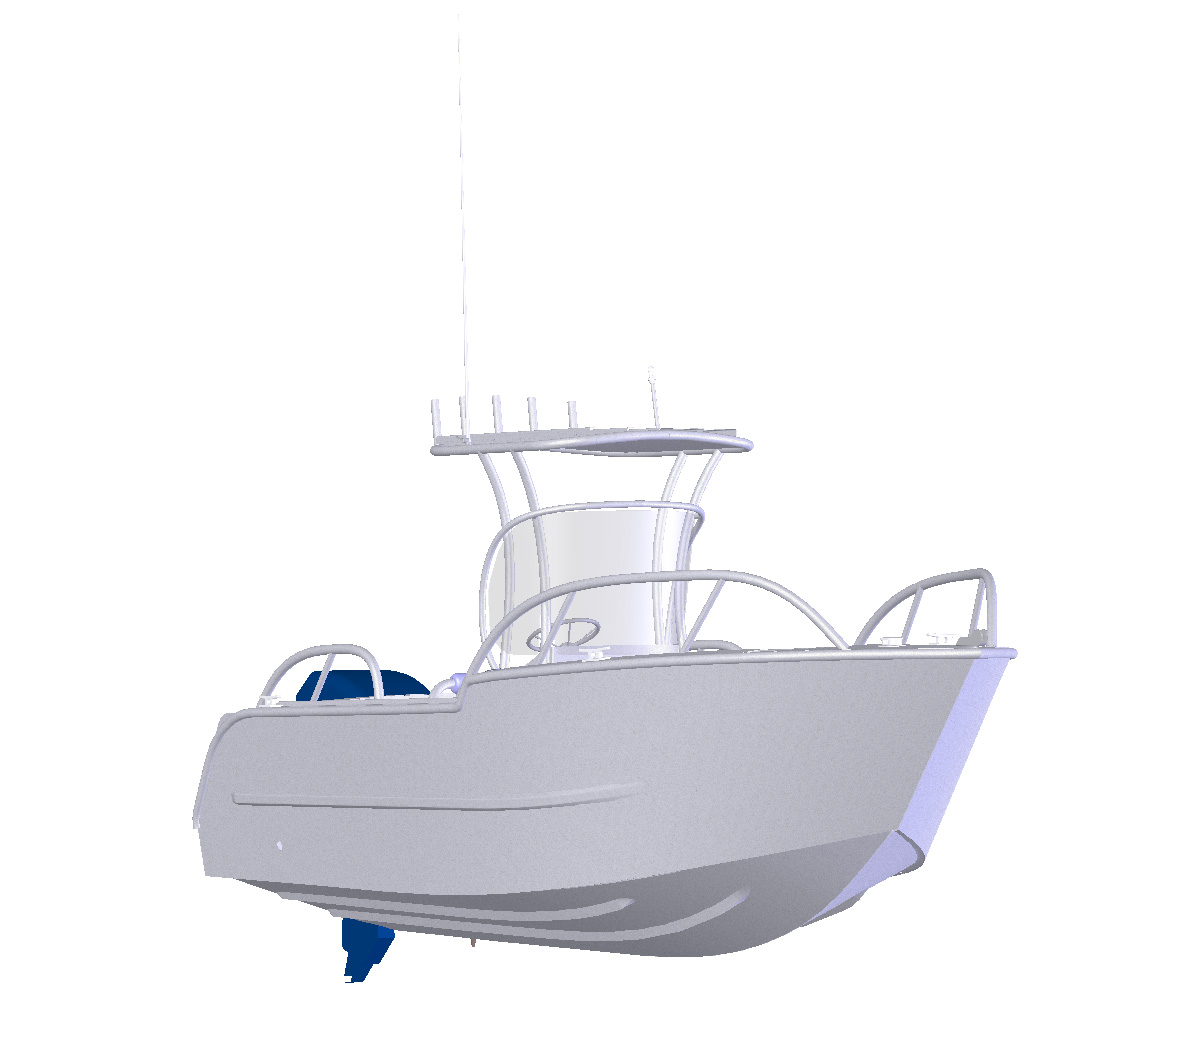 Diy Hardtop Boat Plans - Diy (Do It Your Self)